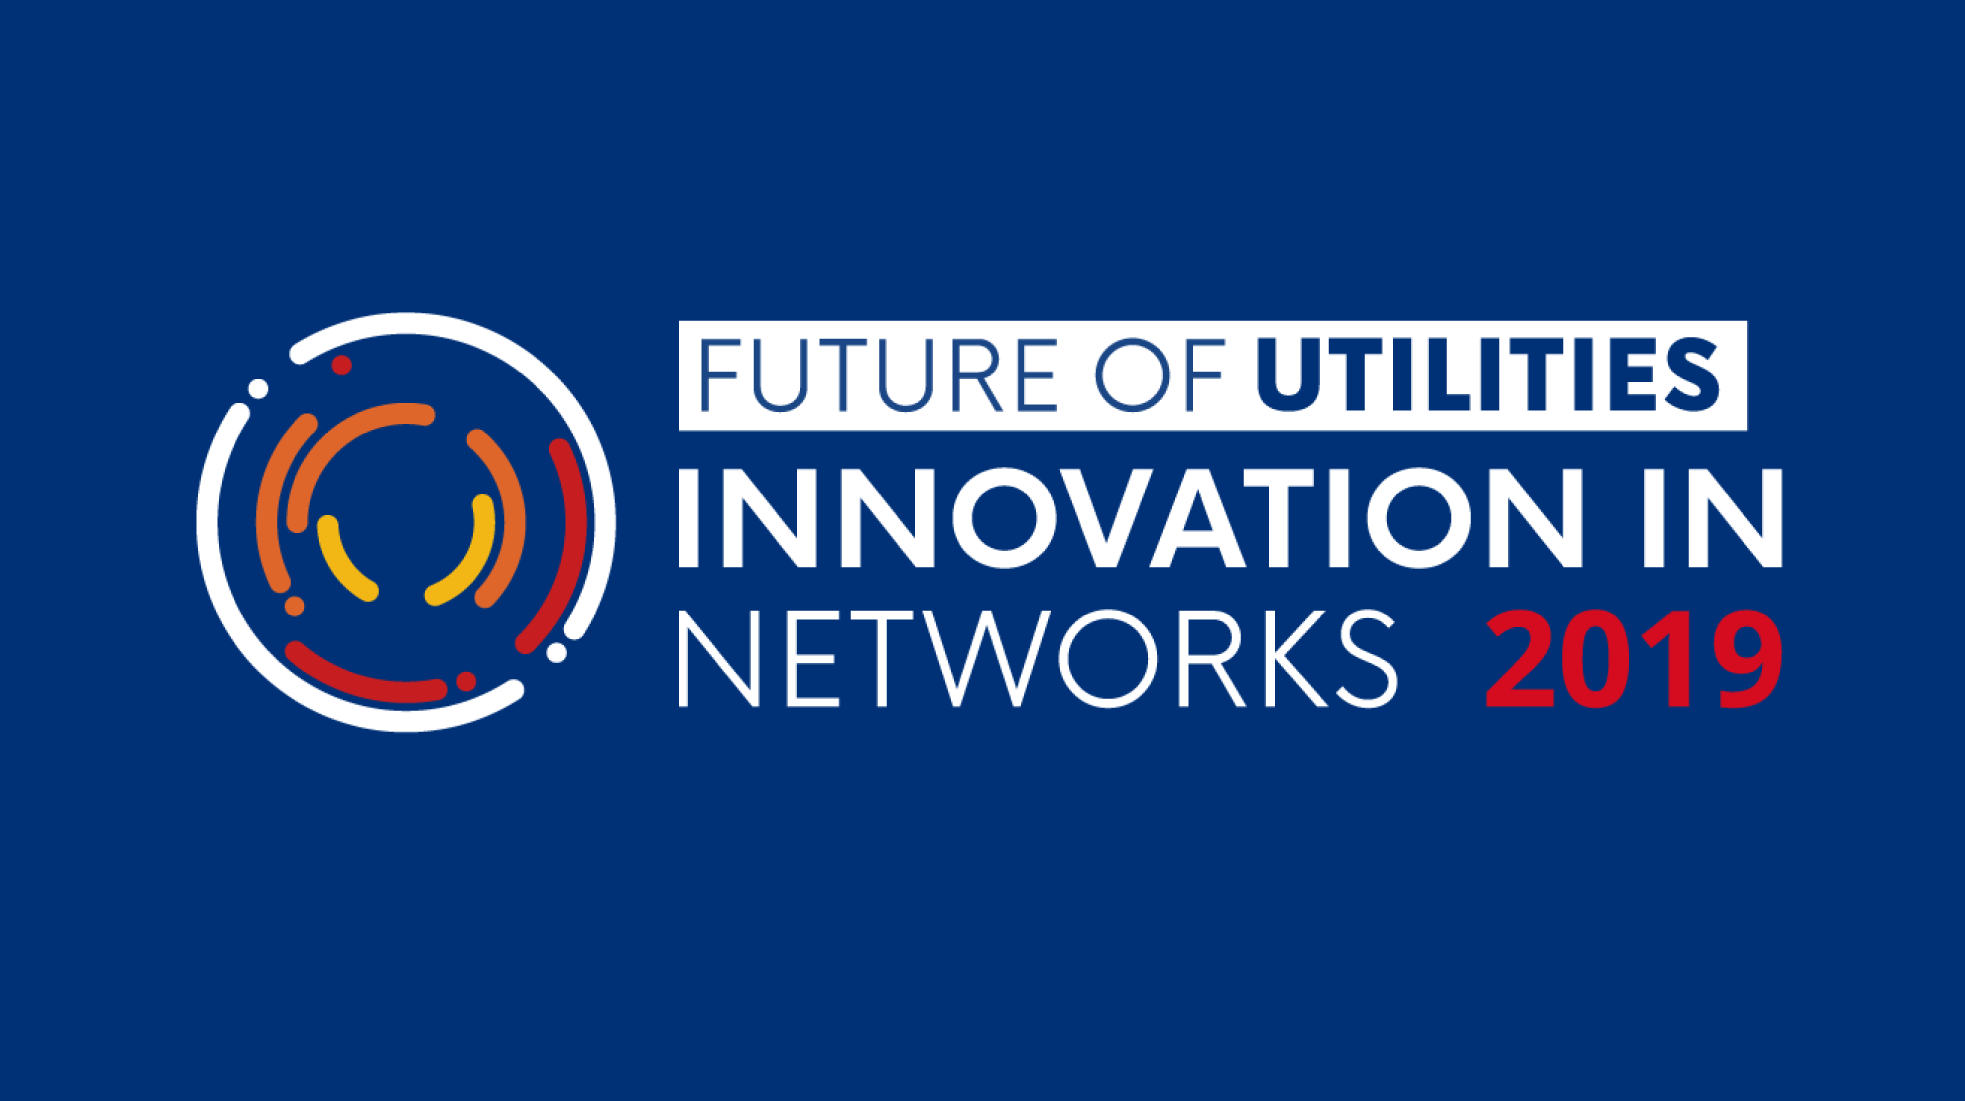 Future of Utilities: Innovation in Networks - Network Tech Conference